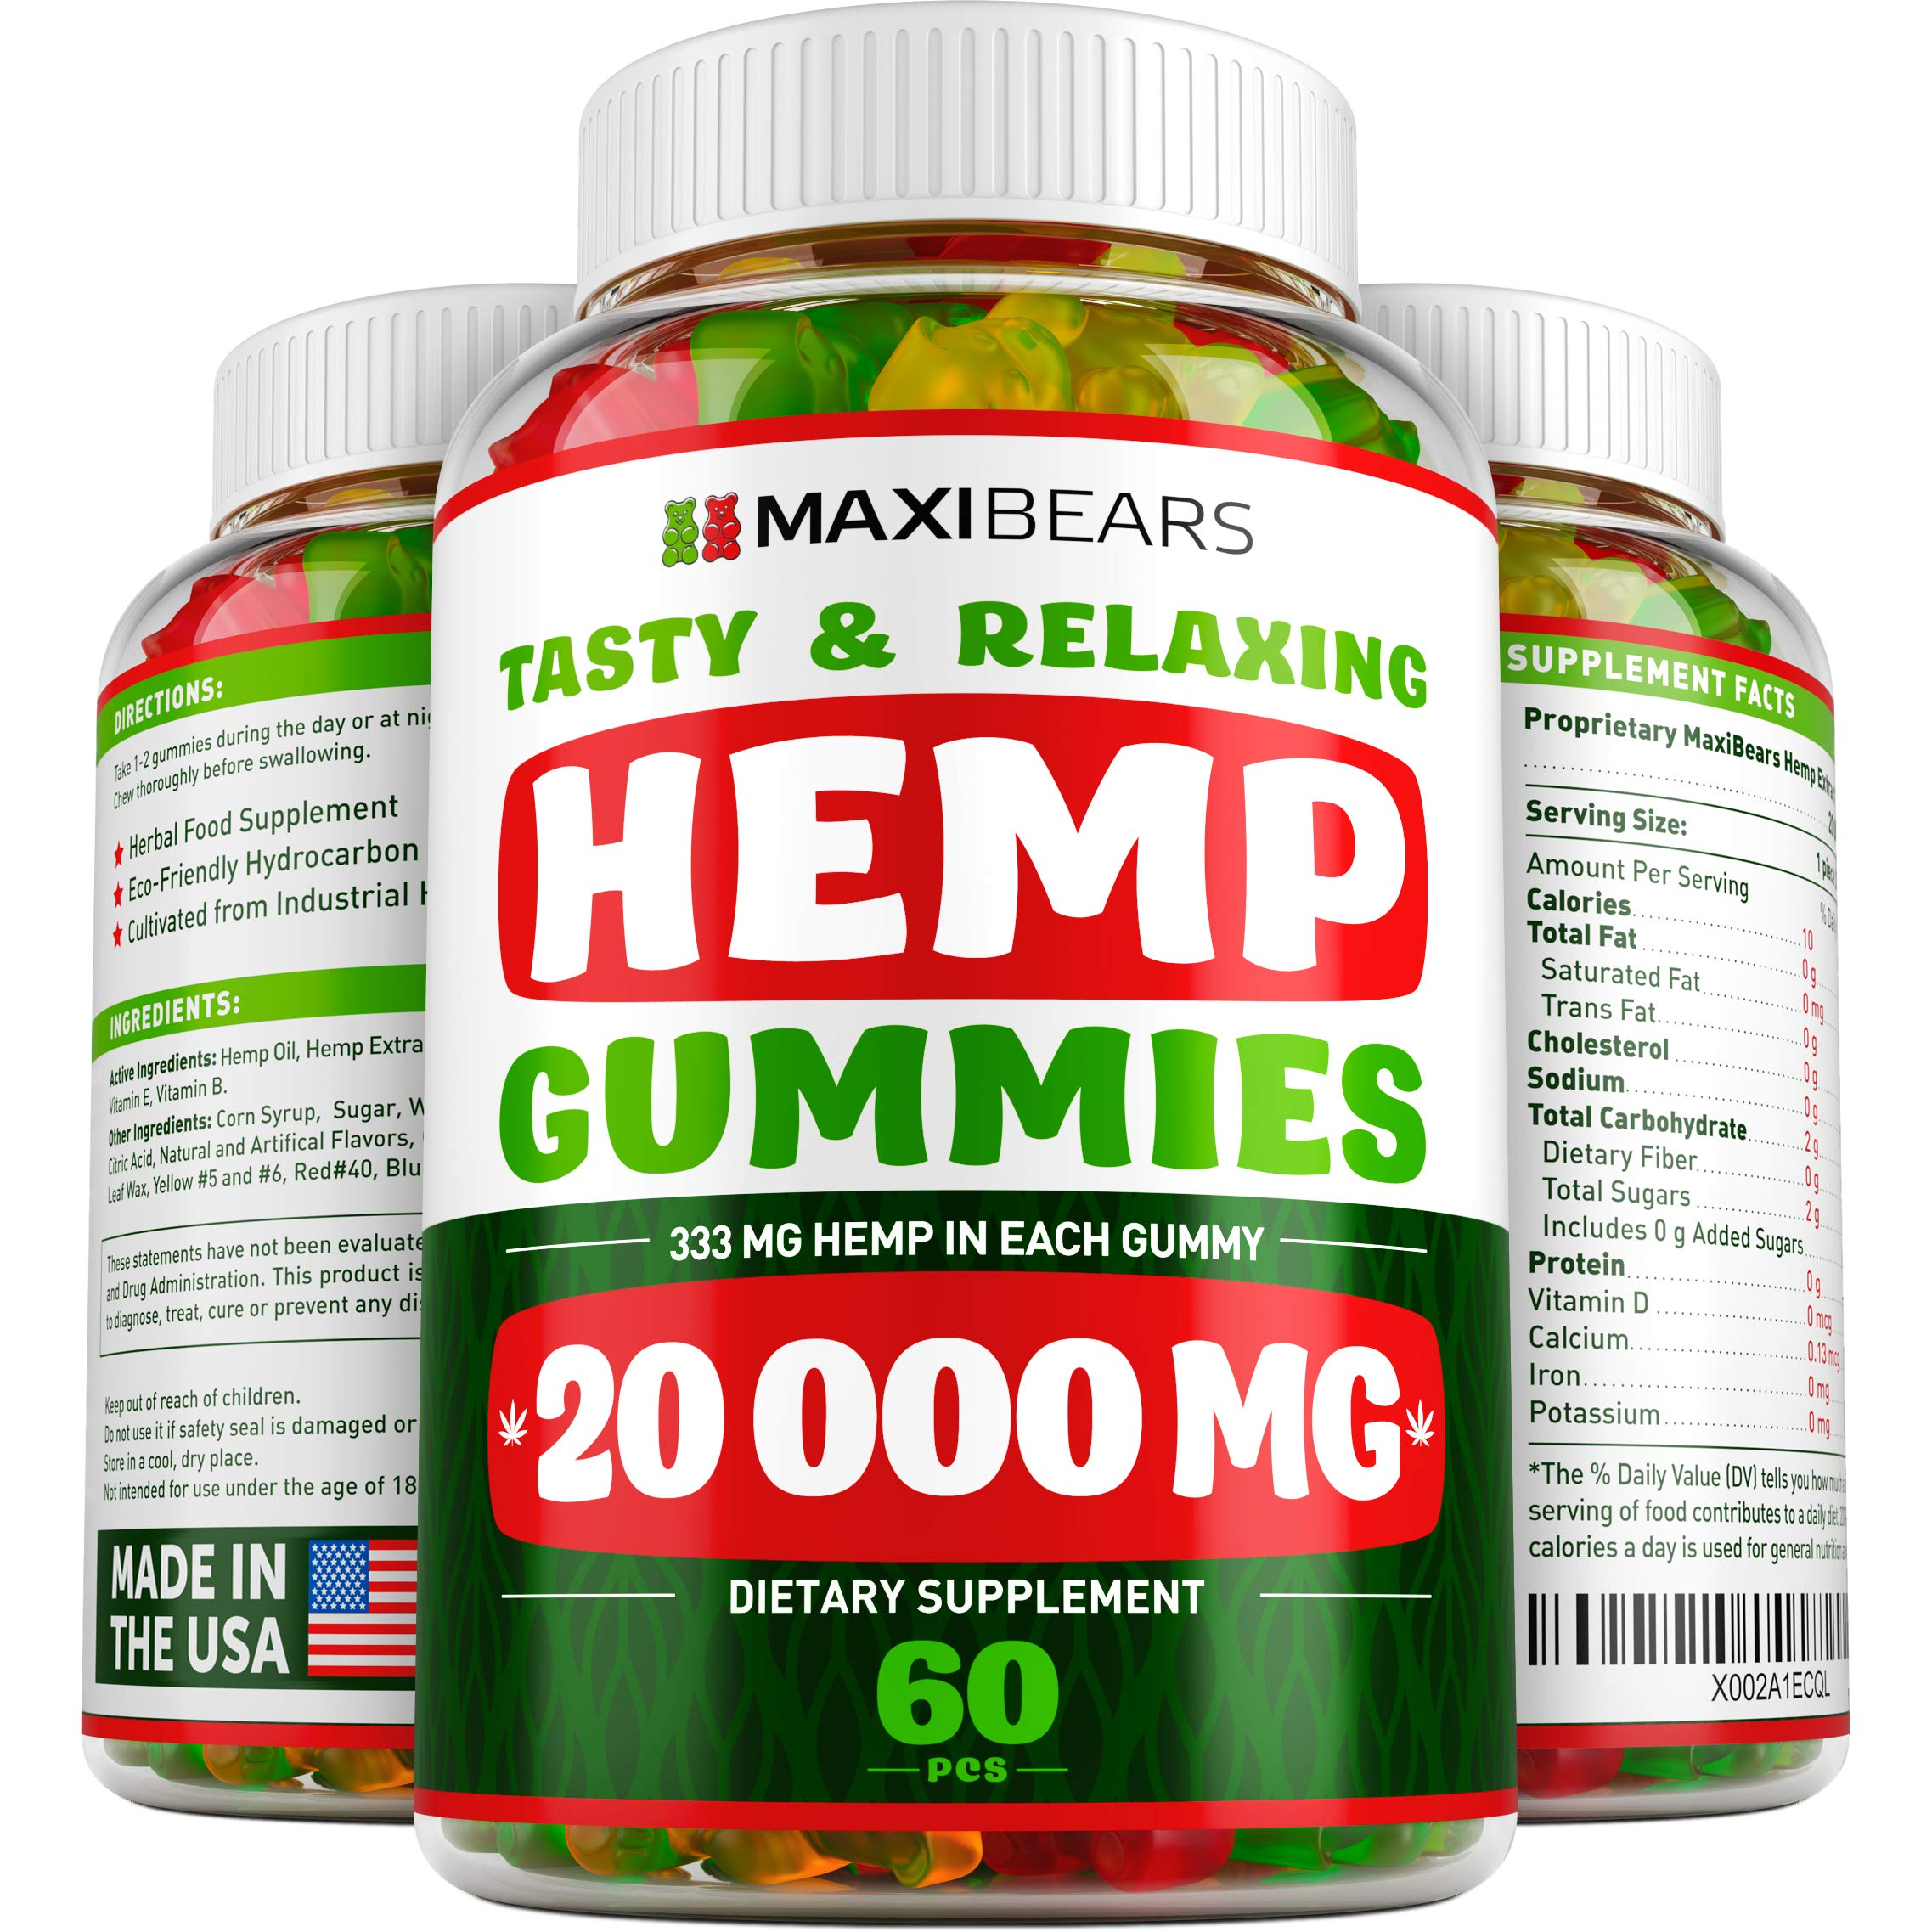 Hemp Gummies - 20000 MG - 333 MG per Gummy - Pain, Stress, Insomnia & Anxiety Relief - Made in USA - Tasty & Relaxing Herbal Gummies - Premium Extract - Mood & Immune Support by Maxibears